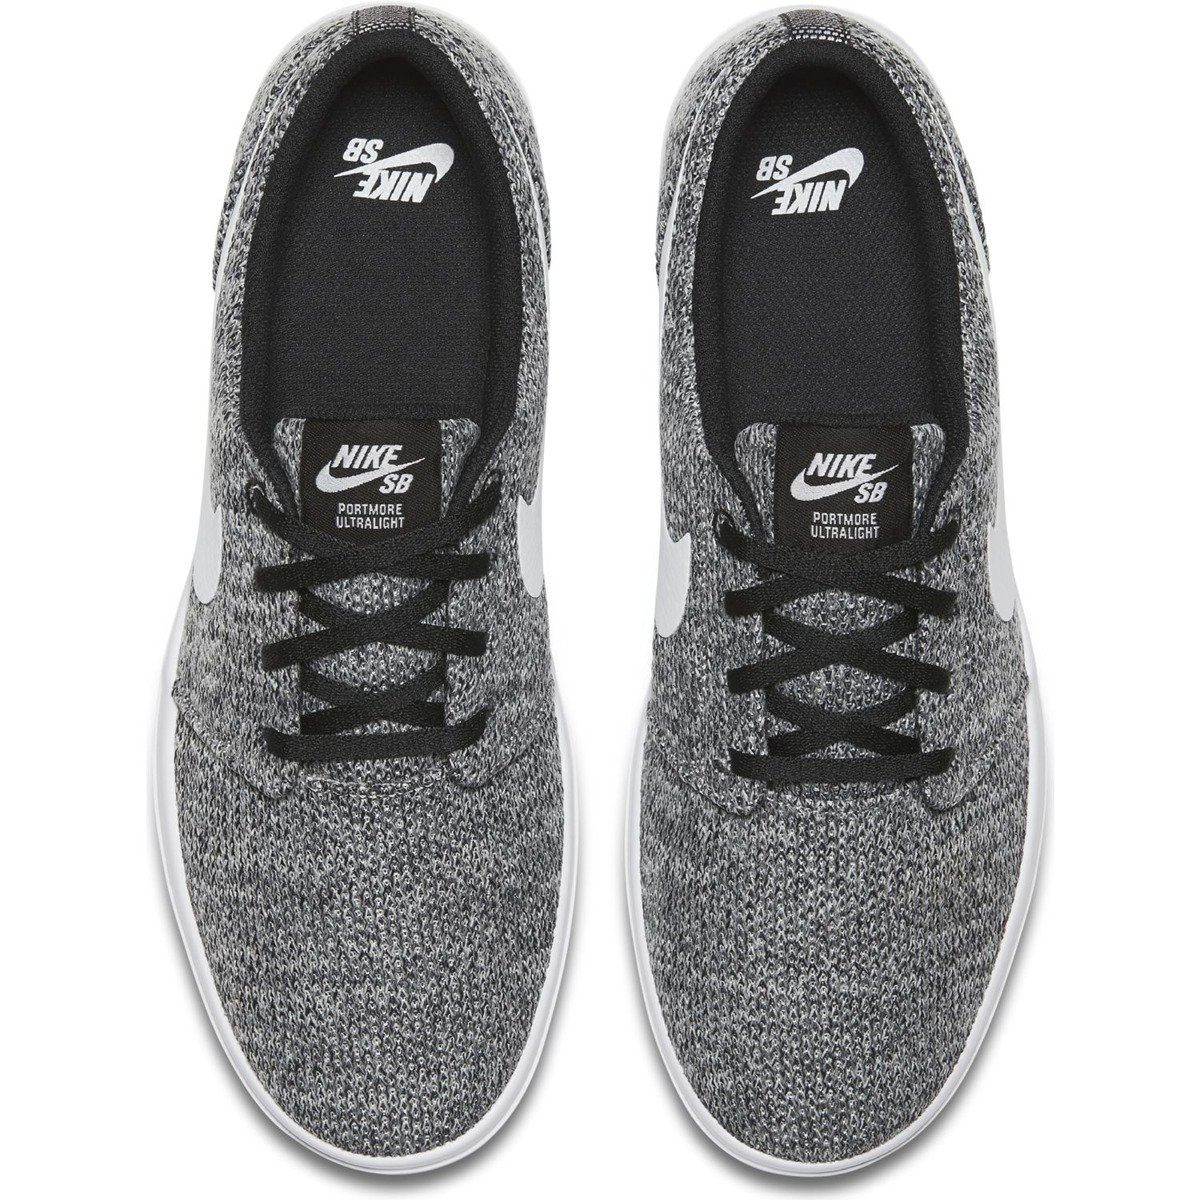 check out 1b329 6afd9 ... shoes nike sb portmore ii ultralight black white-wolf grey Click to  zoom ...